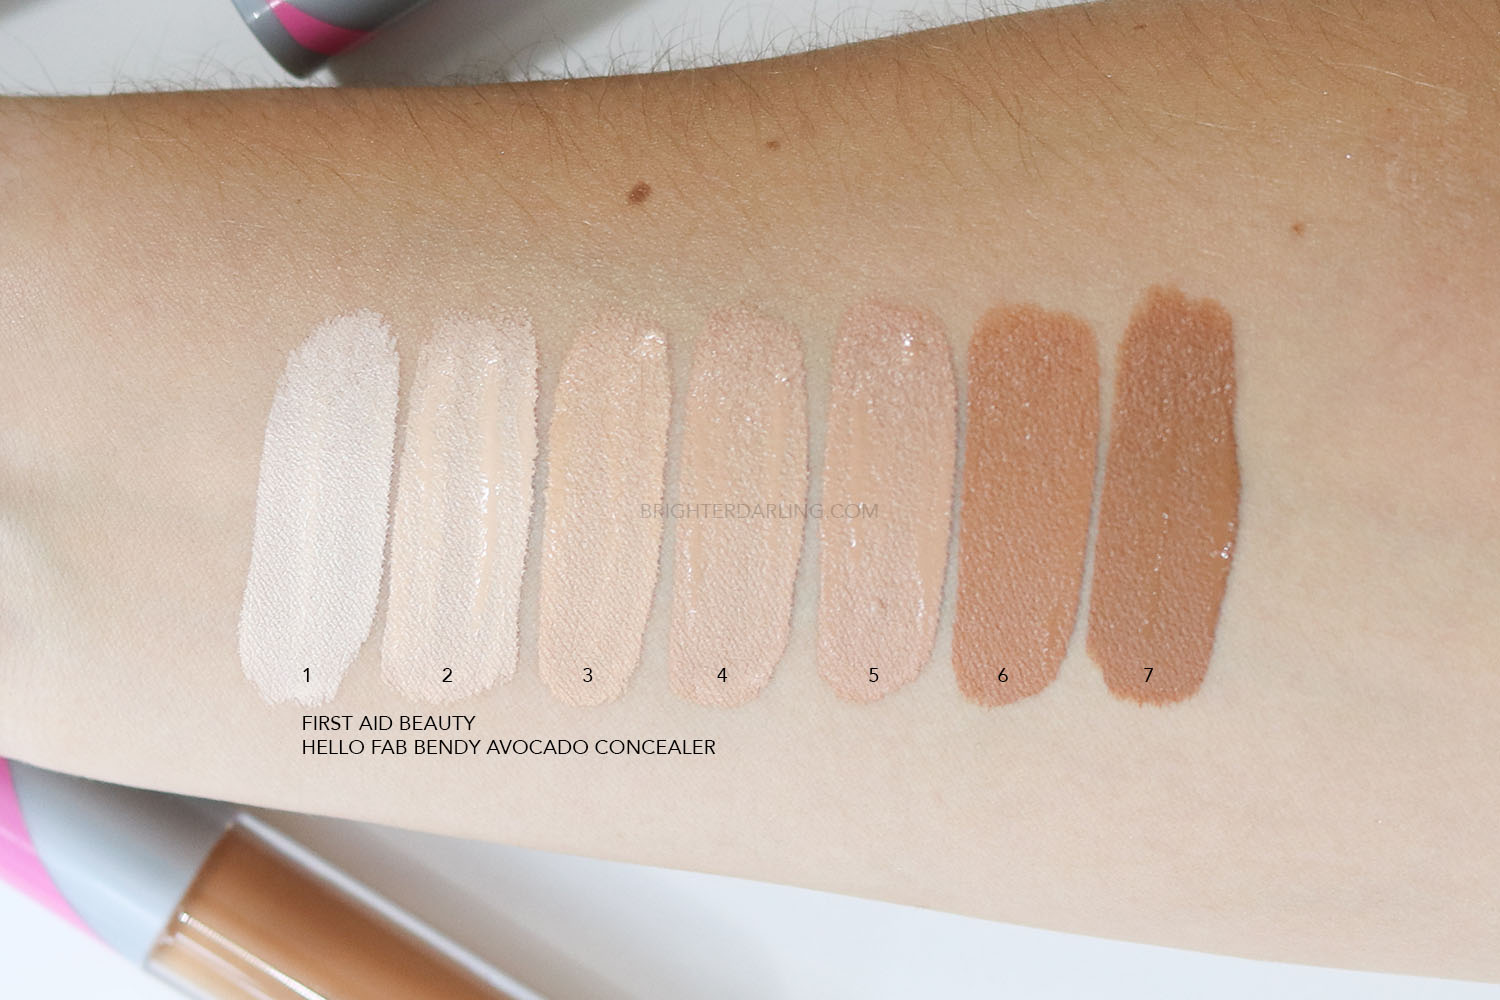 First Aid Beauty Hello Fab Bendy Avocado Concealer Review | FIRST AID BEAUTY HELLO FAB BENDY AVOCADO CONCEALER SWATCHES | Brighter Darling Blog